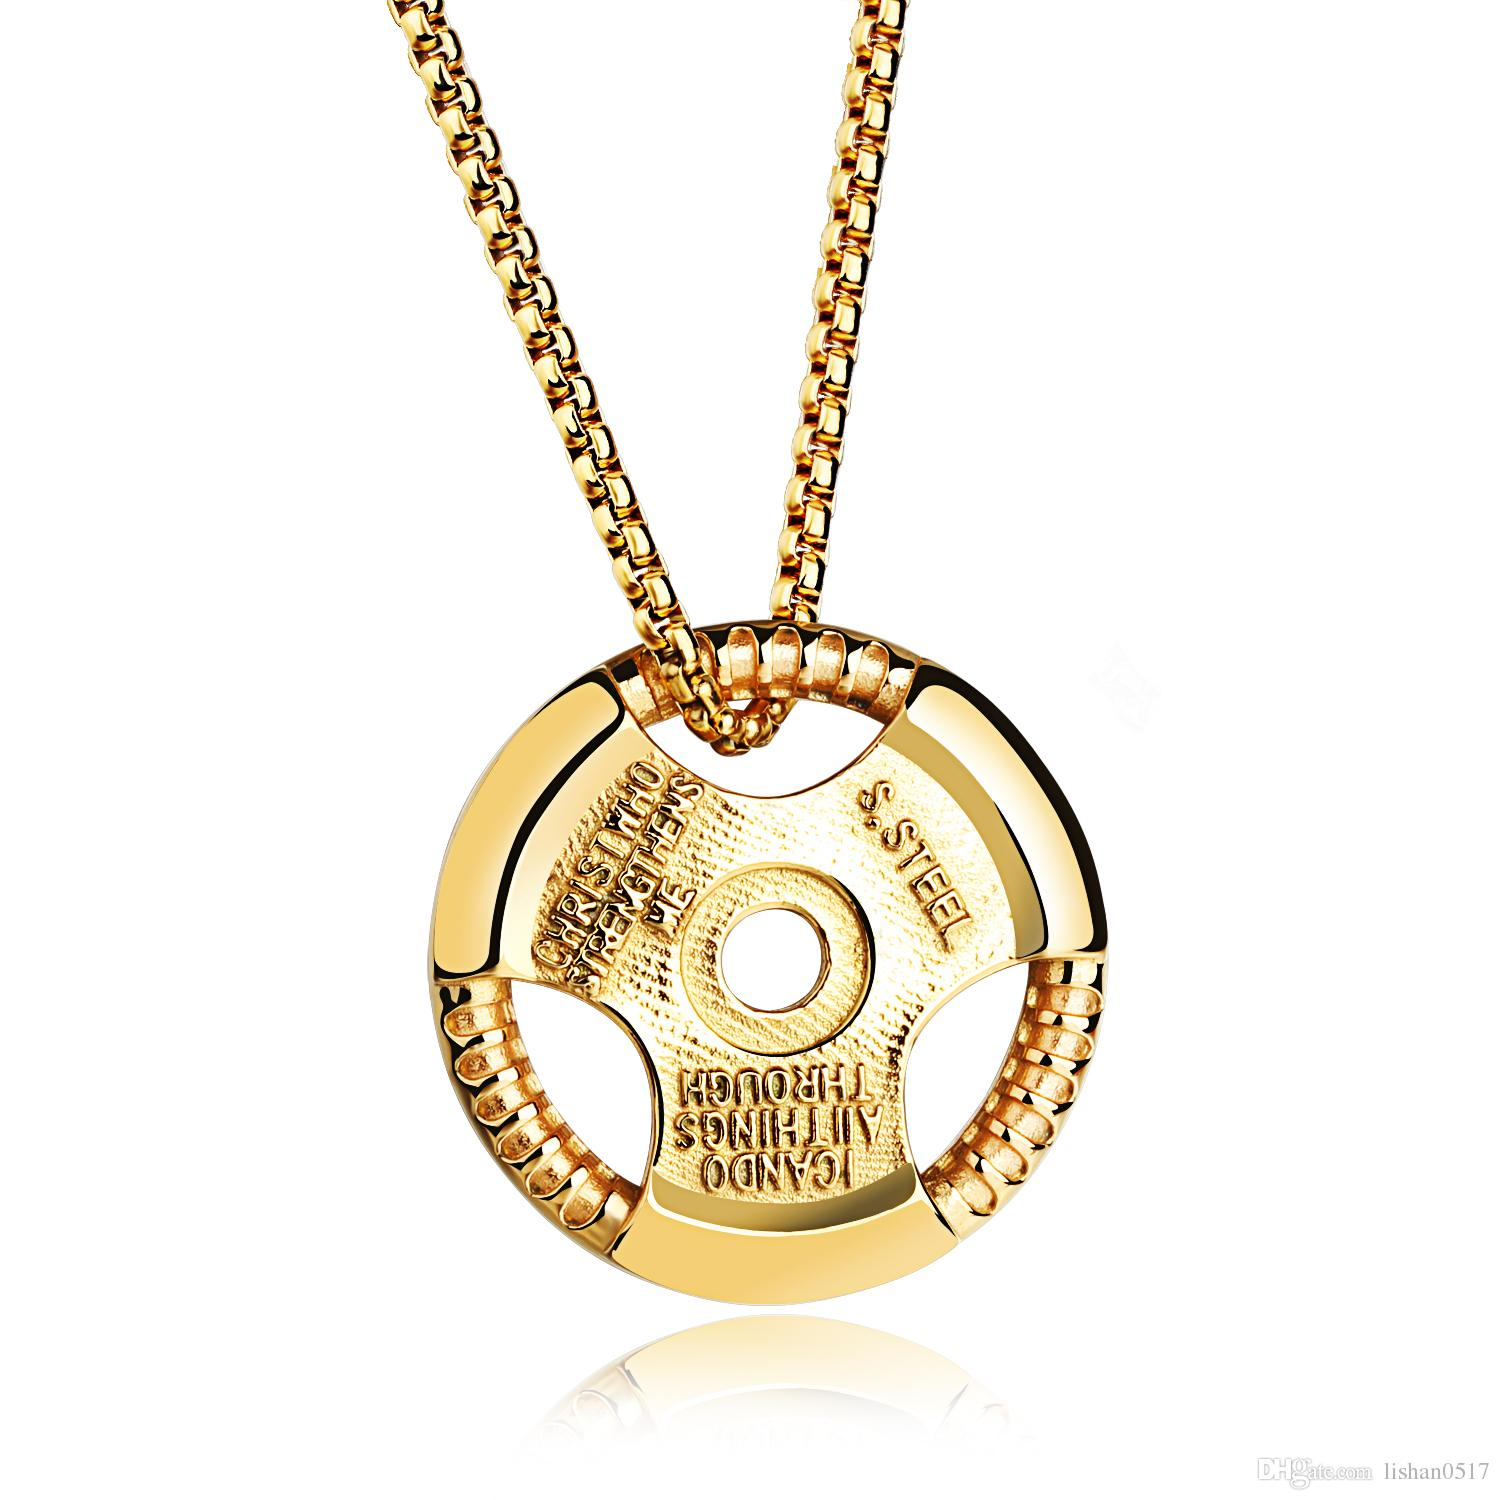 Wholesale casual disc design man pendant necklaces fashion stainless wholesale casual disc design man pendant necklaces fashion stainless steel sports men jewelry gift powerful accessories gx1051 necklaces choker necklace aloadofball Images